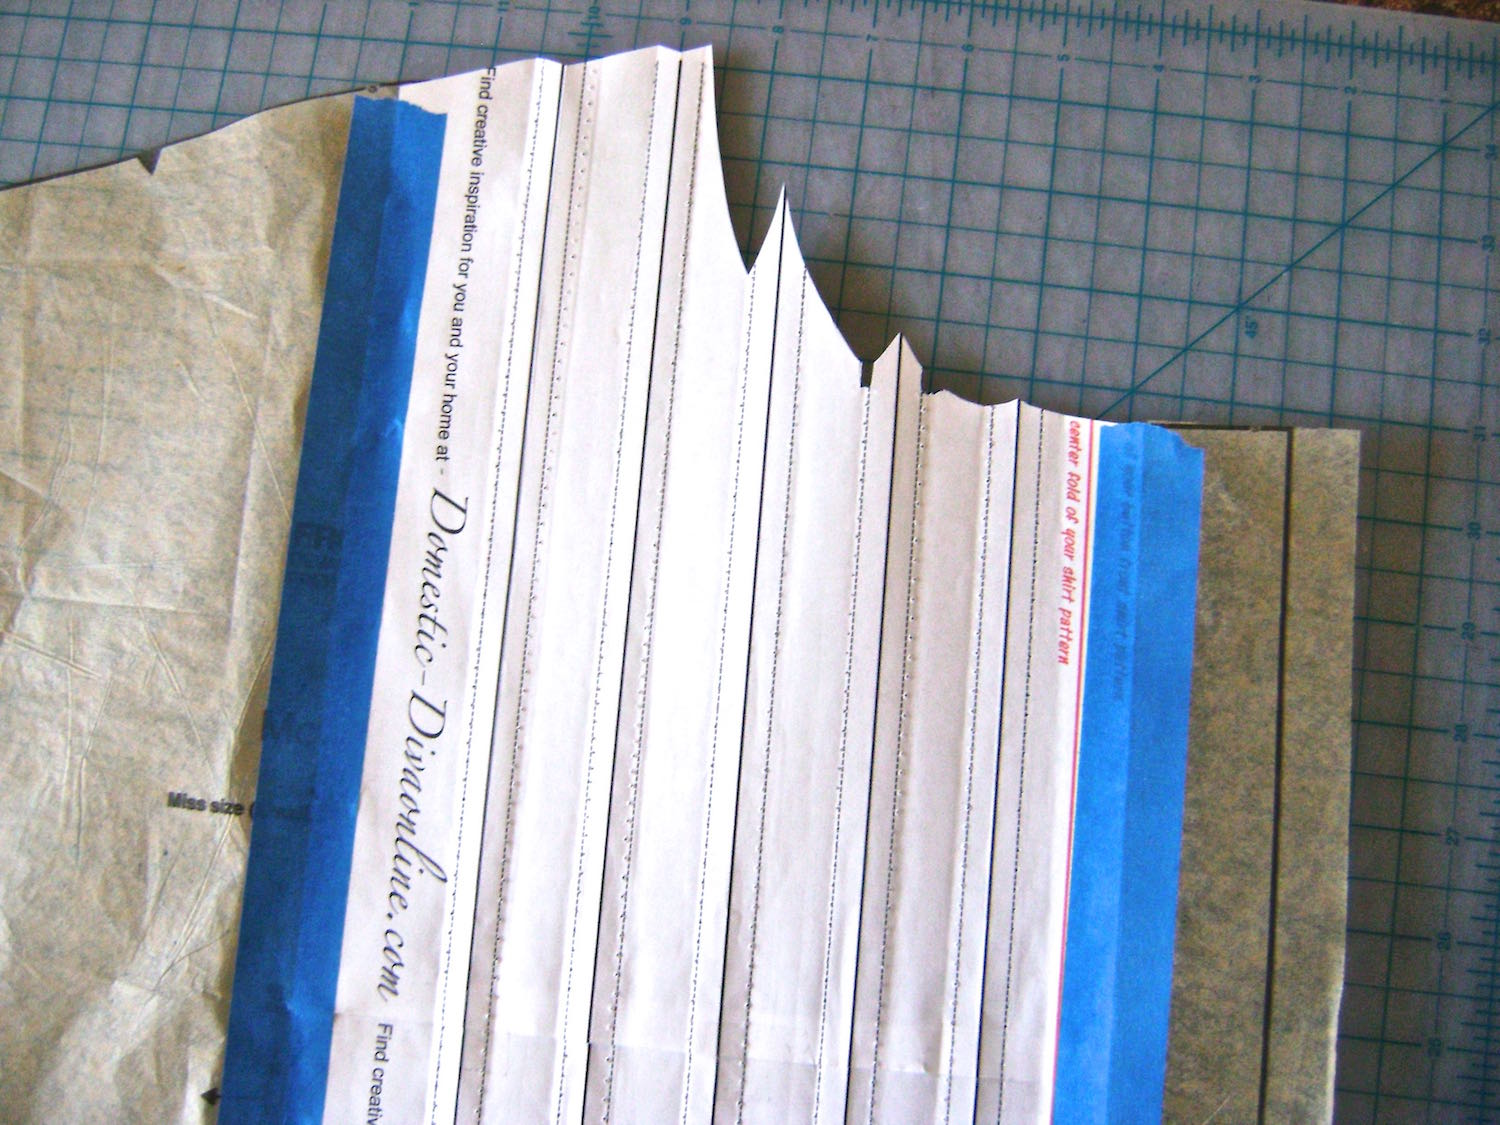 step 8 - Remove all the stitching lines in the template page.  It's easiest to do this if you cut the top and bottom thread of each thread line every six inches or so, instead of trying to pull out the treads in one long piece. Iron the template page so it lays flat.  Join the previously sliced narrow piece of your pattern flush (no overlap) to the template at the center line.  Your pattern piece is complete and you are ready to cut out your shirt front.